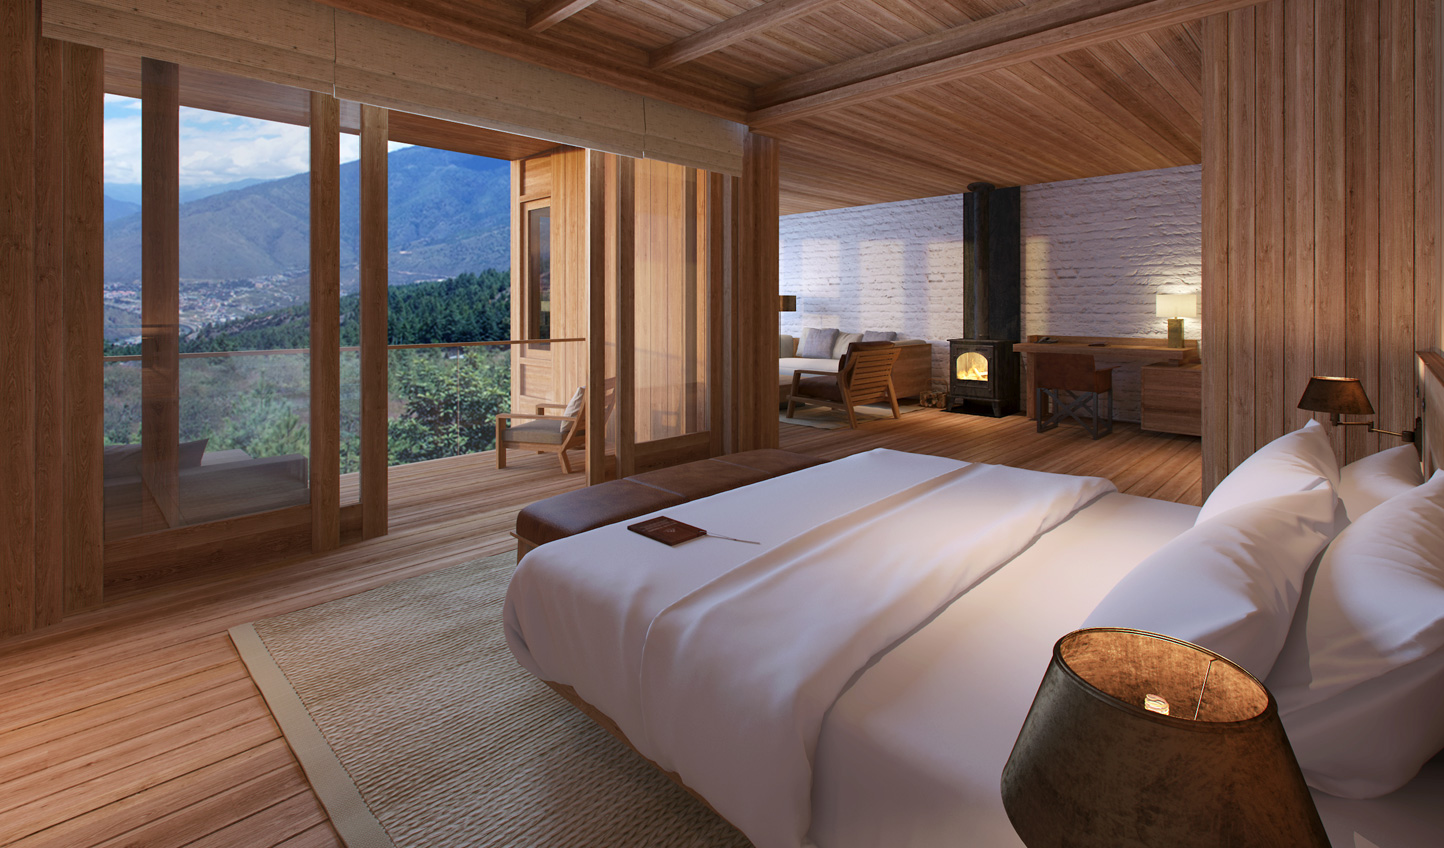 Wake up to spellbinding views at Six Senses Thimpu